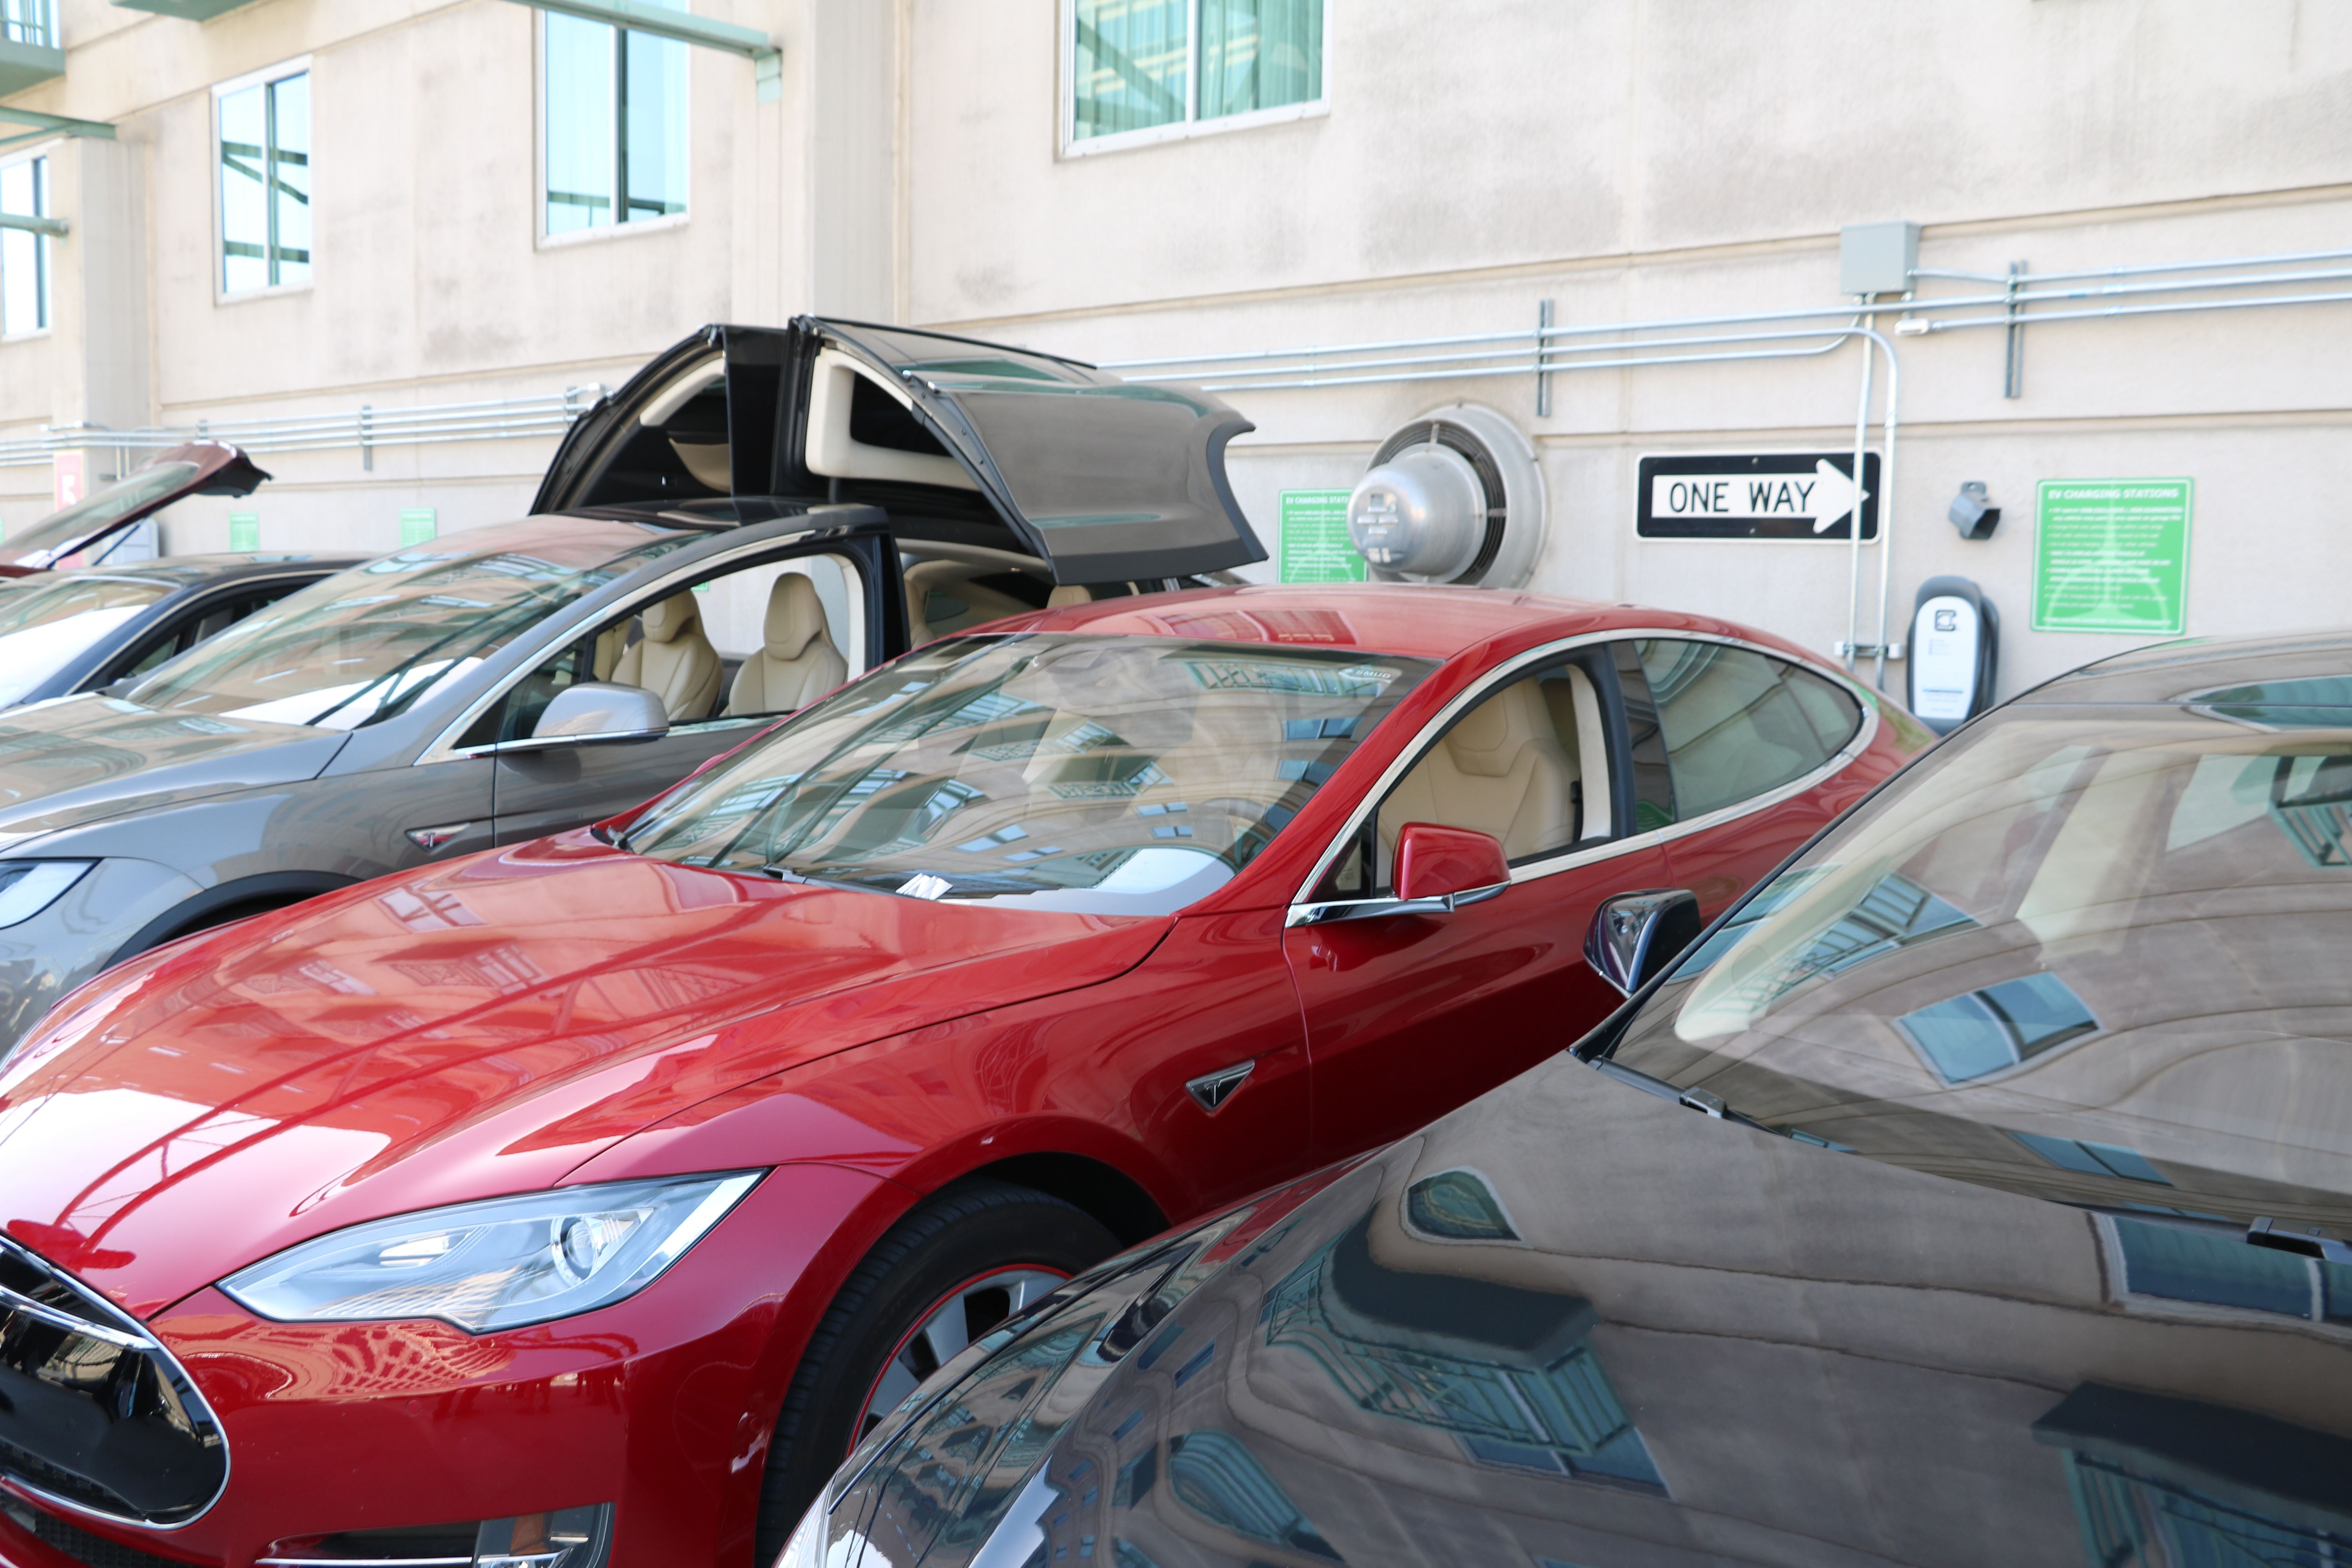 Teslas Charging With 240v Clippercreek Chargers Model X Model S Electric Vehicle Charging Ev Charging Electric Vehicle Charging Station